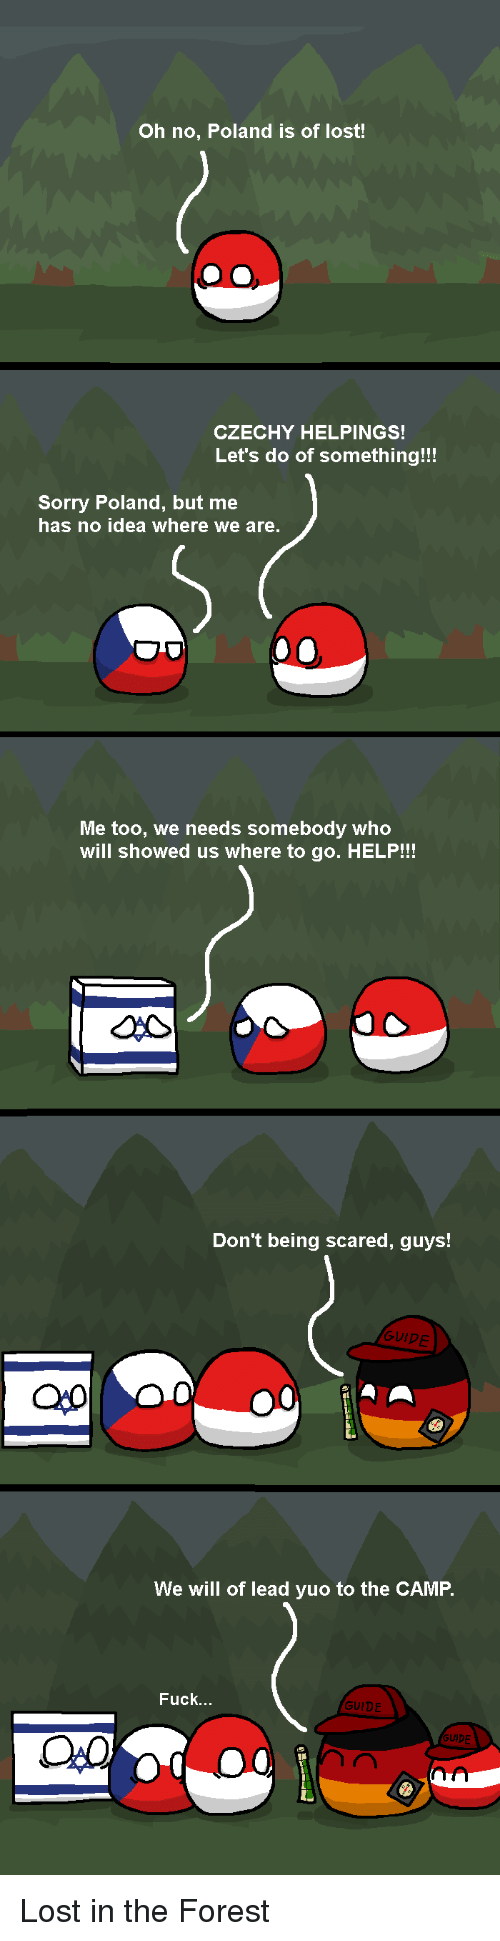 Sorry, Lost, and Fuck: Oh no, Poland is of lost!  CZECHY HELPINGS!  Let's do of something!!!  Sorry Poland, but me  has no idea where we are.  Me too, we needs somebody who  will showed us where to go. HELP!!!  Don't being scared, guys!  GUIPE  We will of lead yuo to the CAMP.  Fuck.  GUIDE  PE